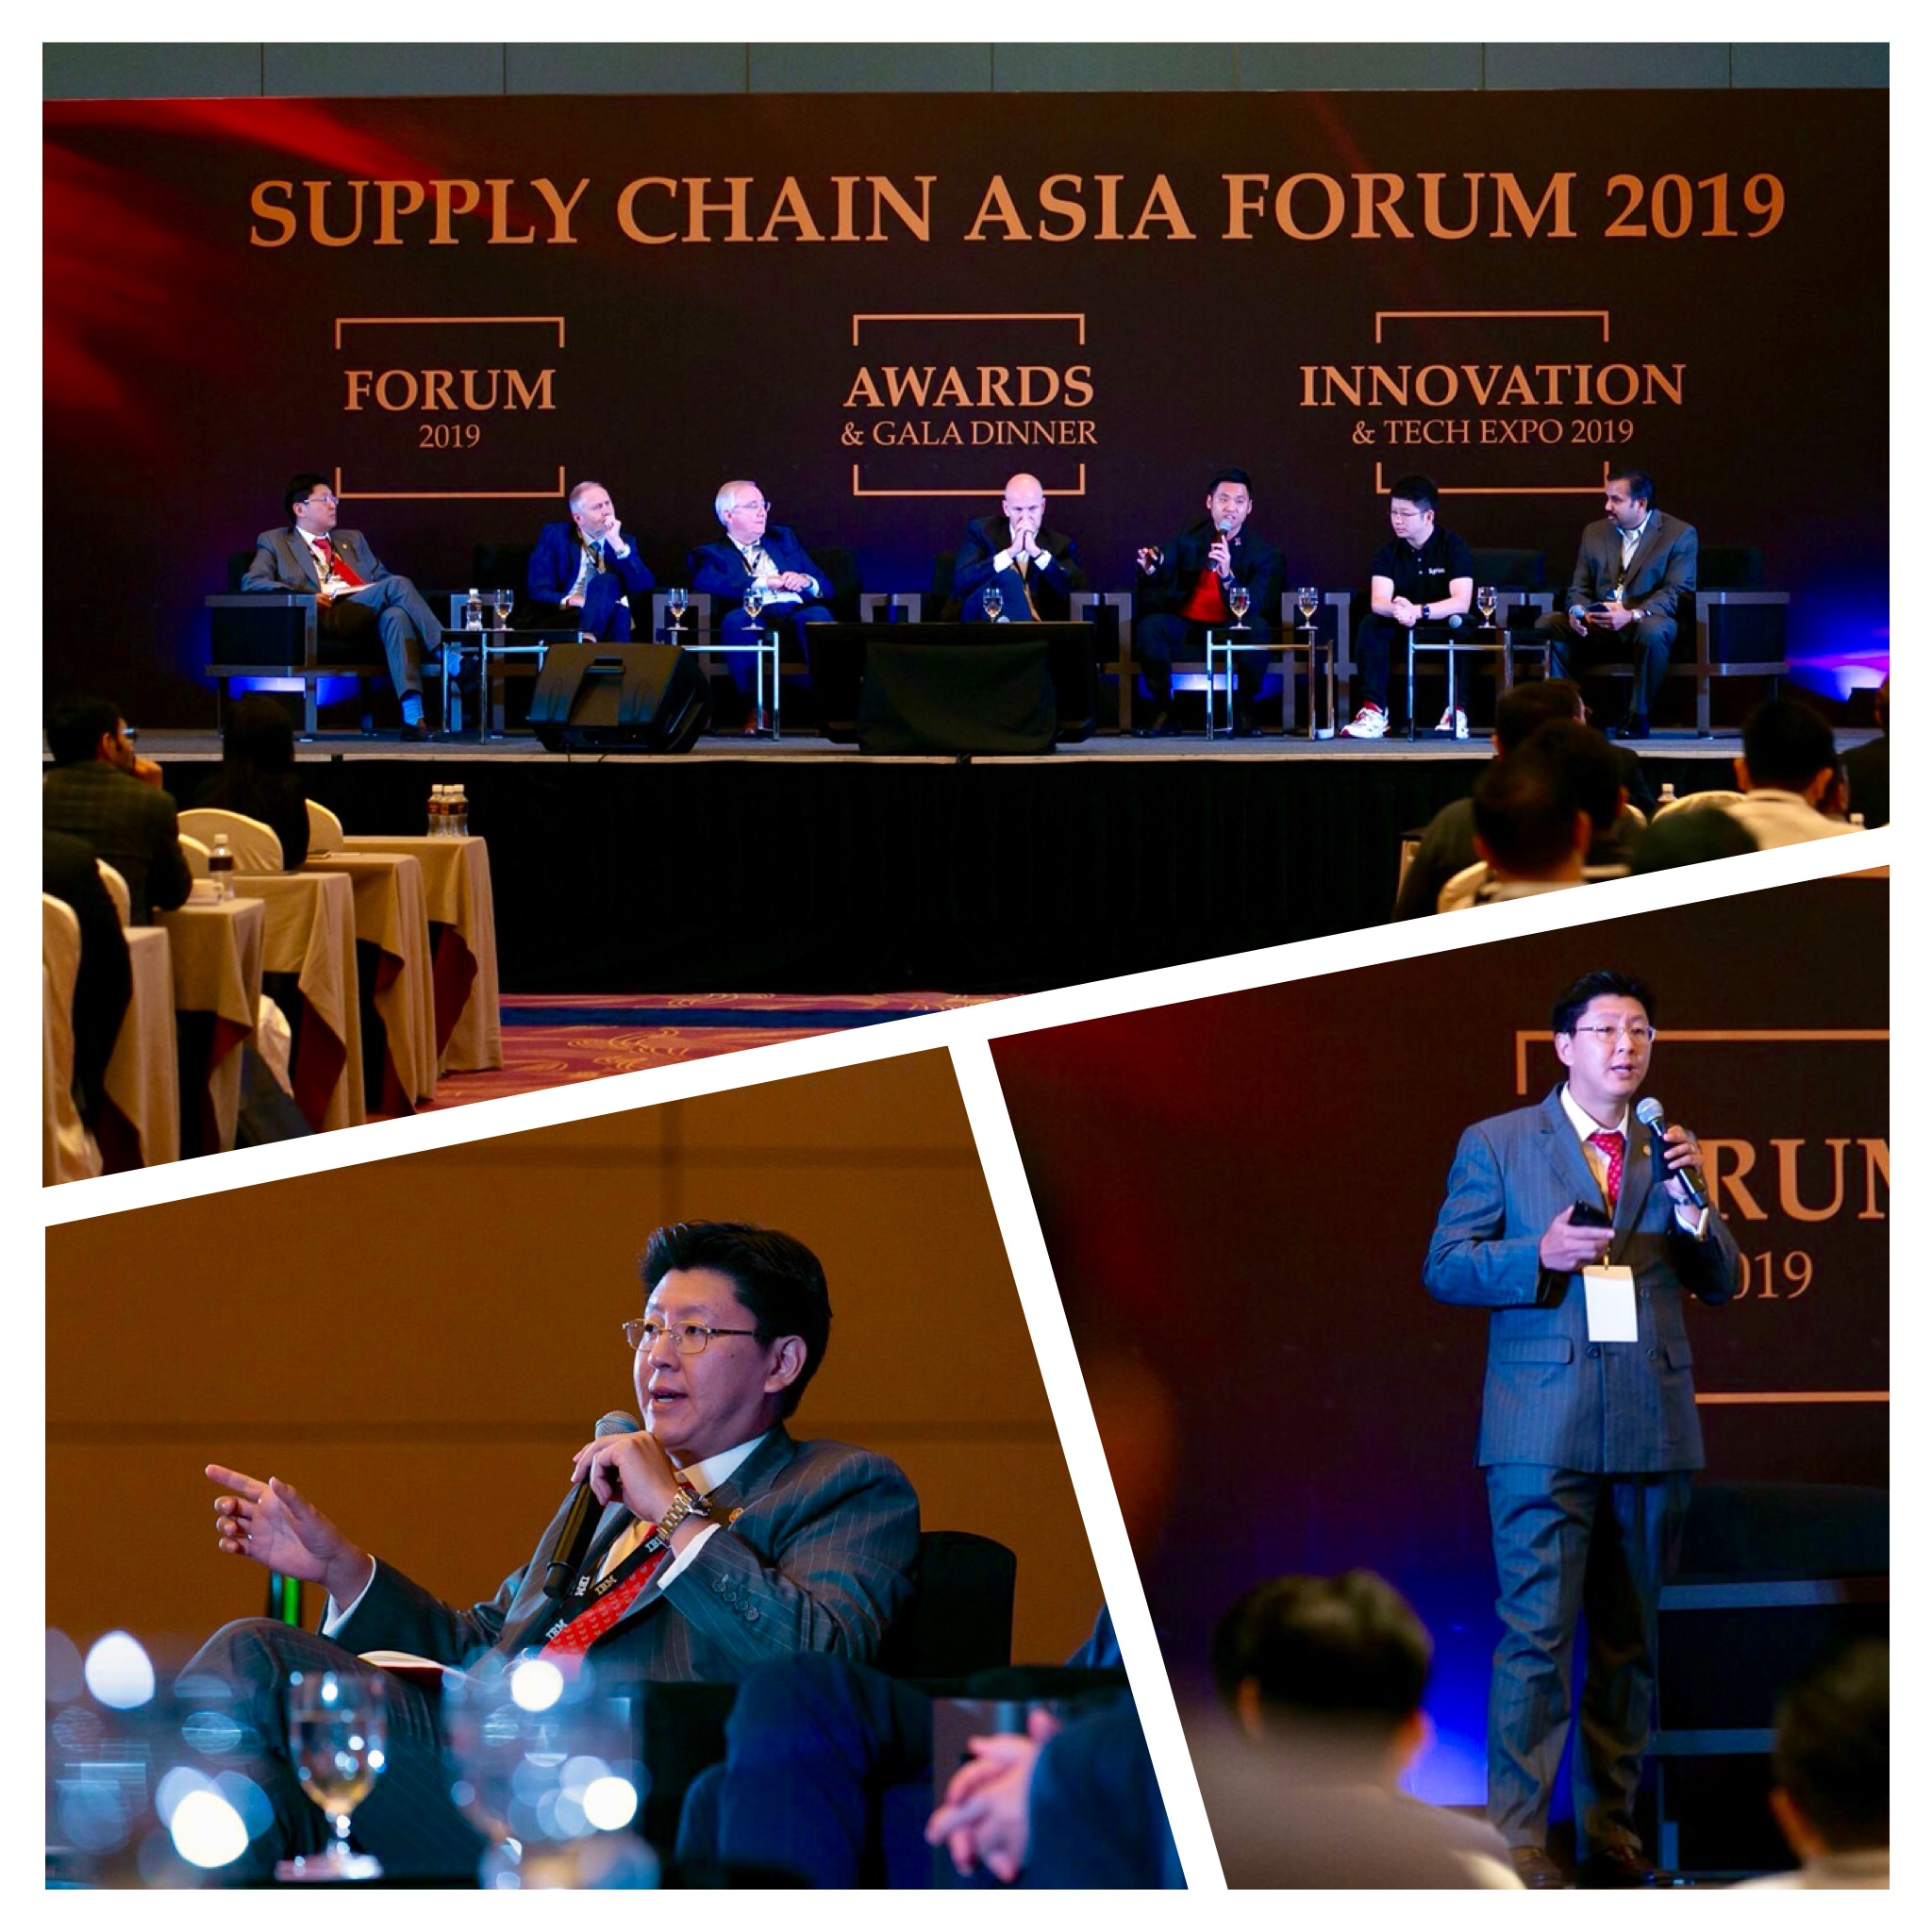 Supply Chain Asia Forum 2019